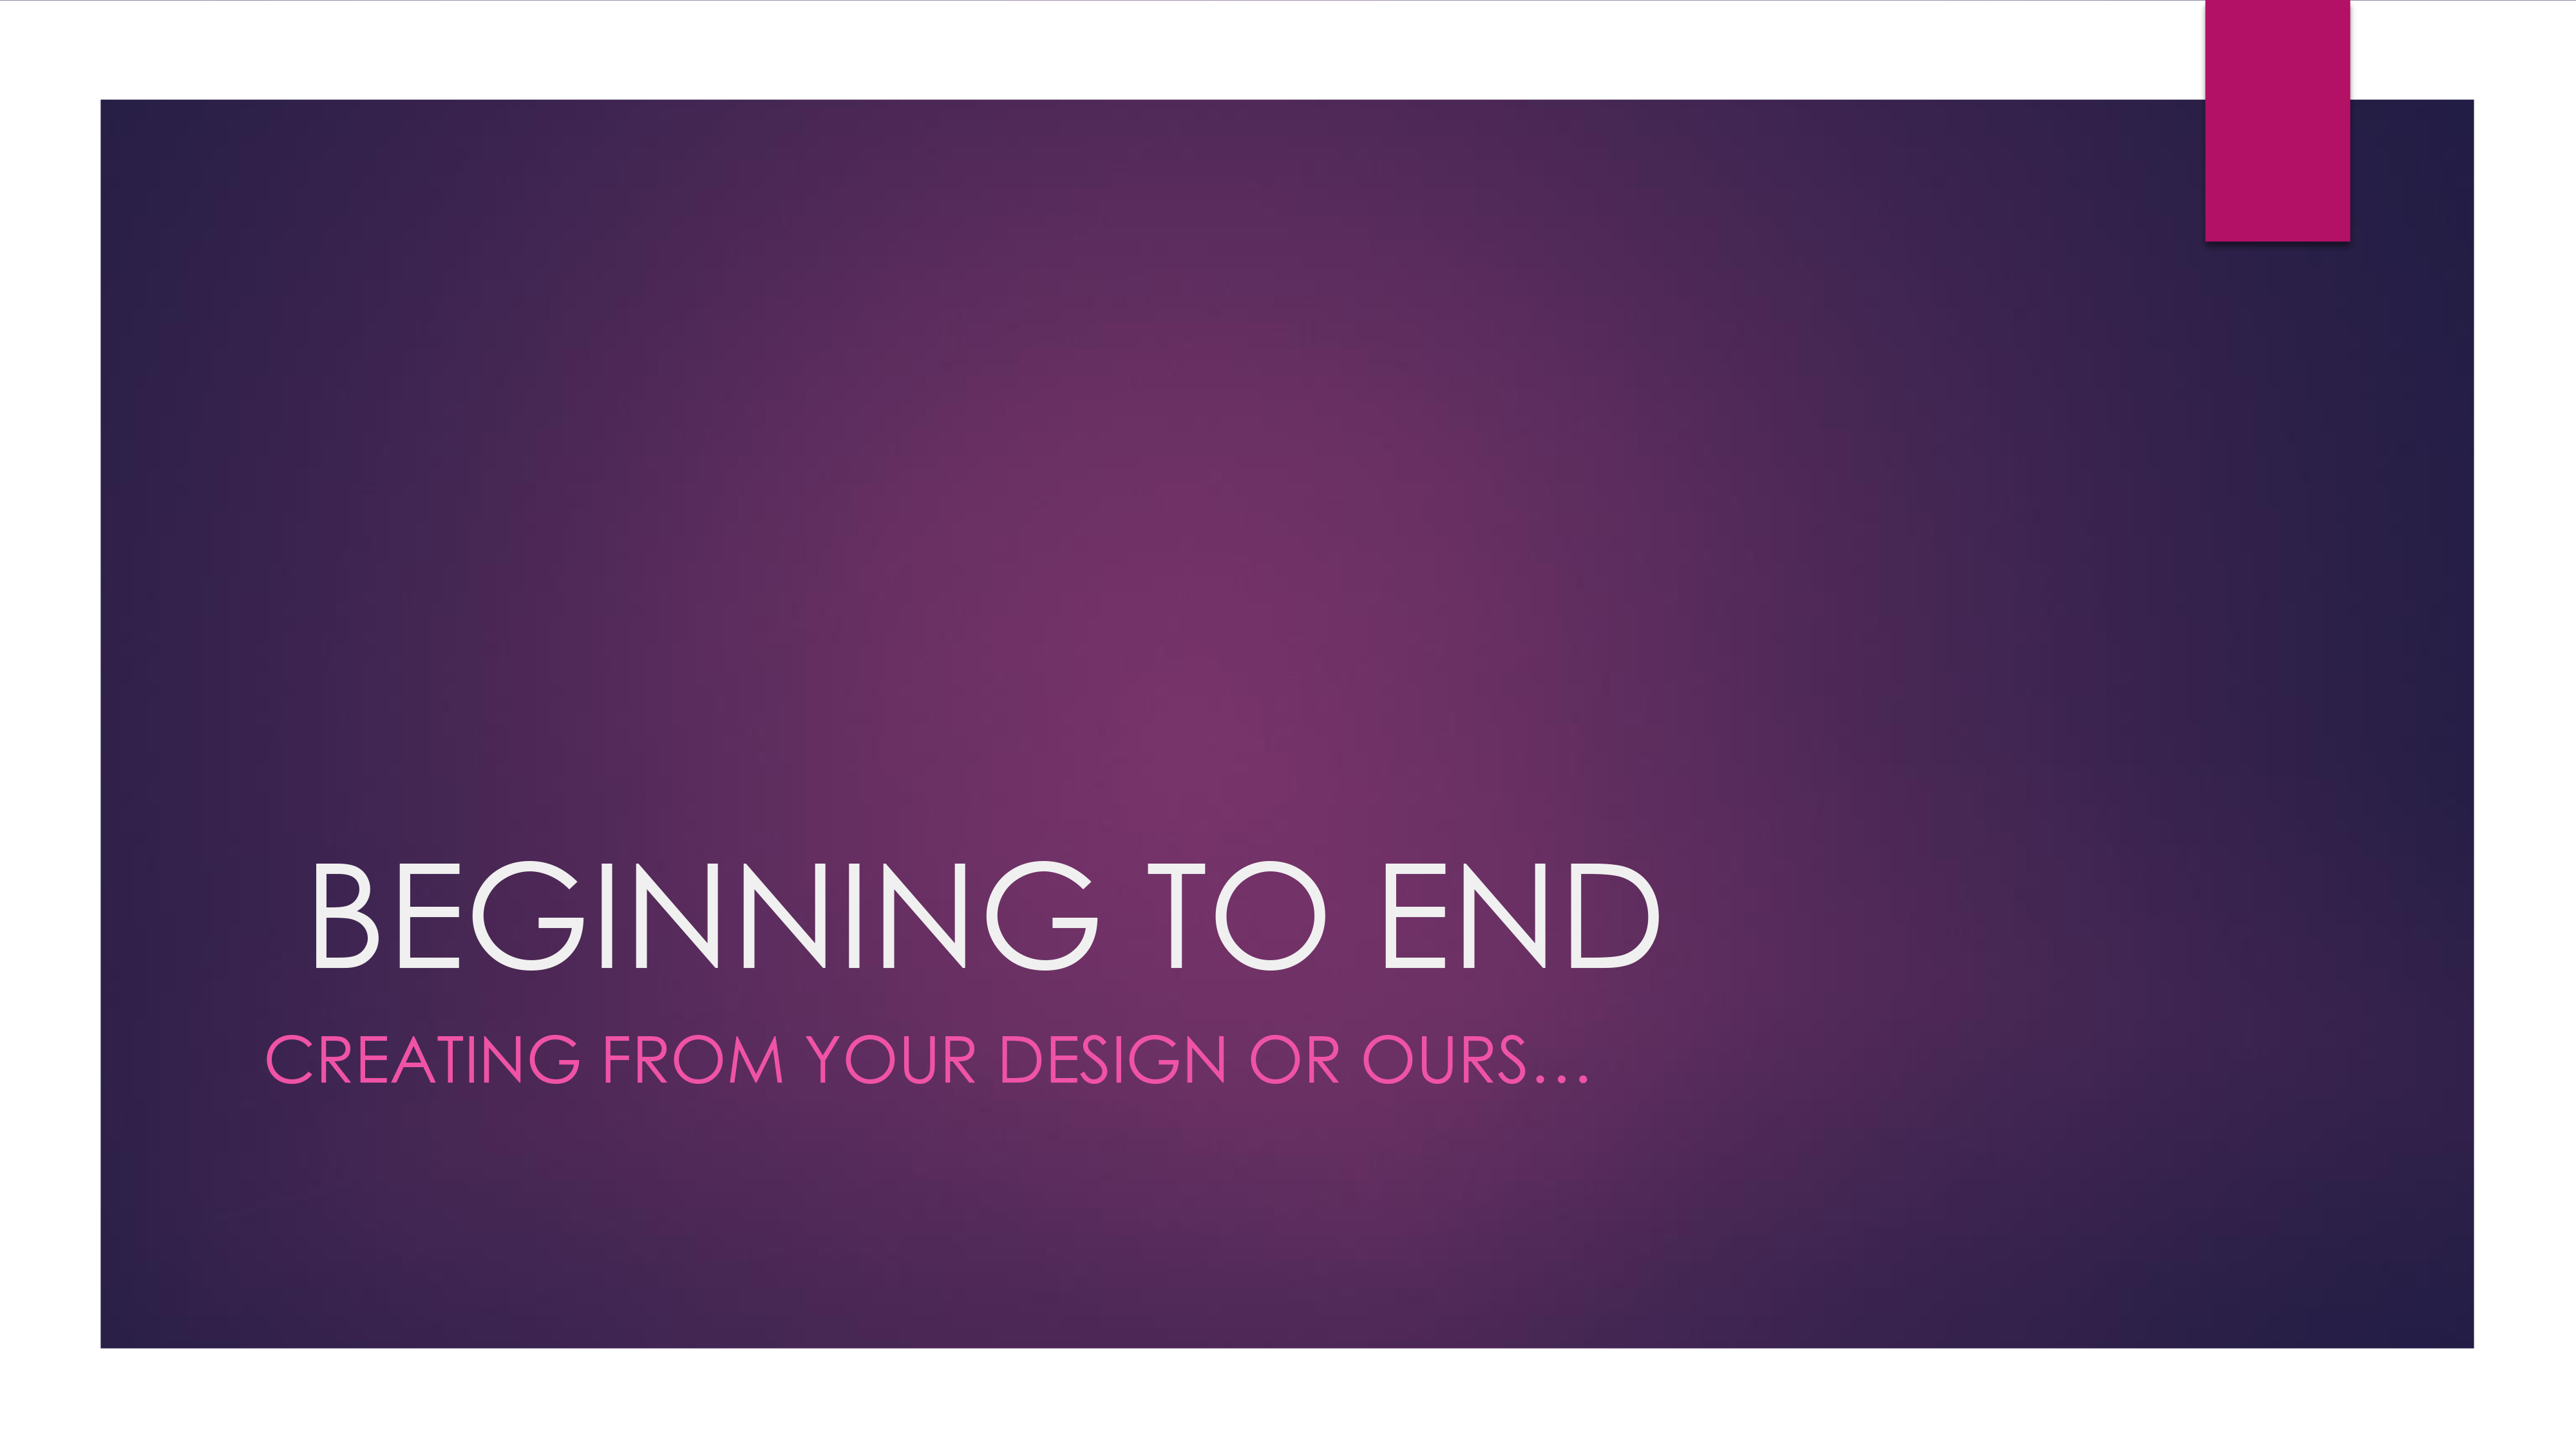 Beginning to End: Creating From Your Design or Ours...